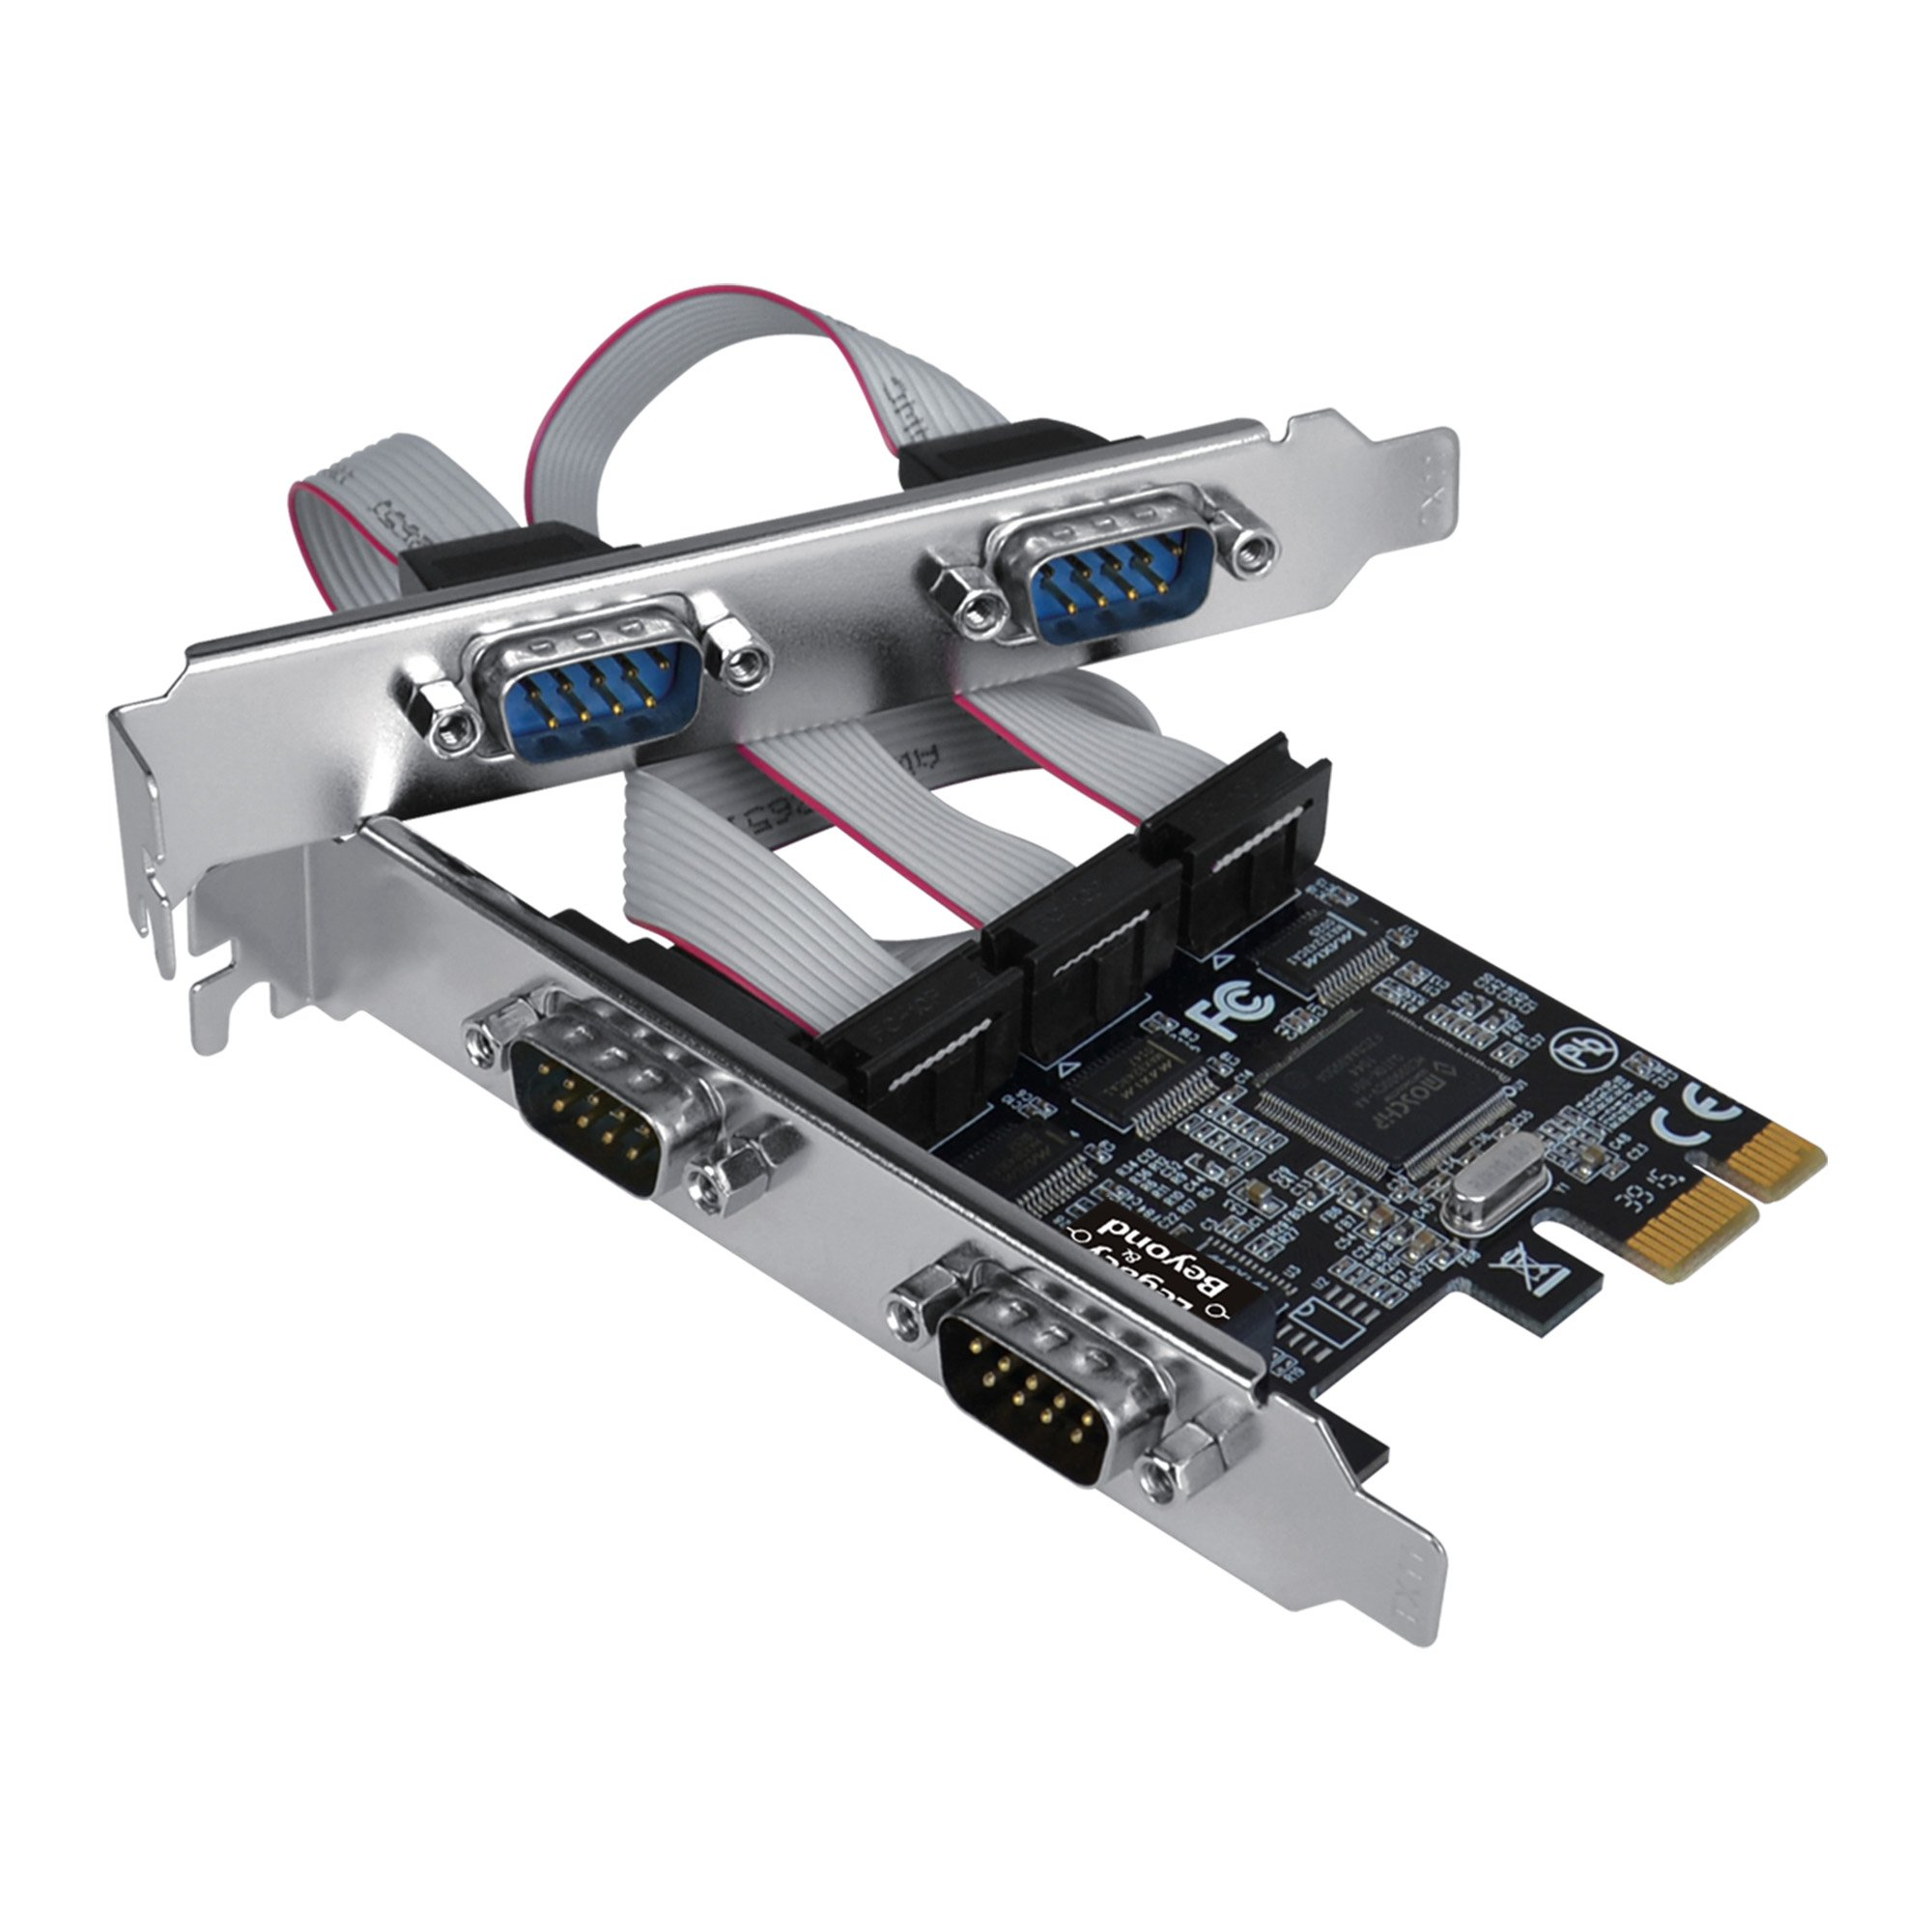 SIIG Legacy and Beyond Series Quad (4 Port) Serial RS-232 PCIe Card with 16C550 UART by SIIG